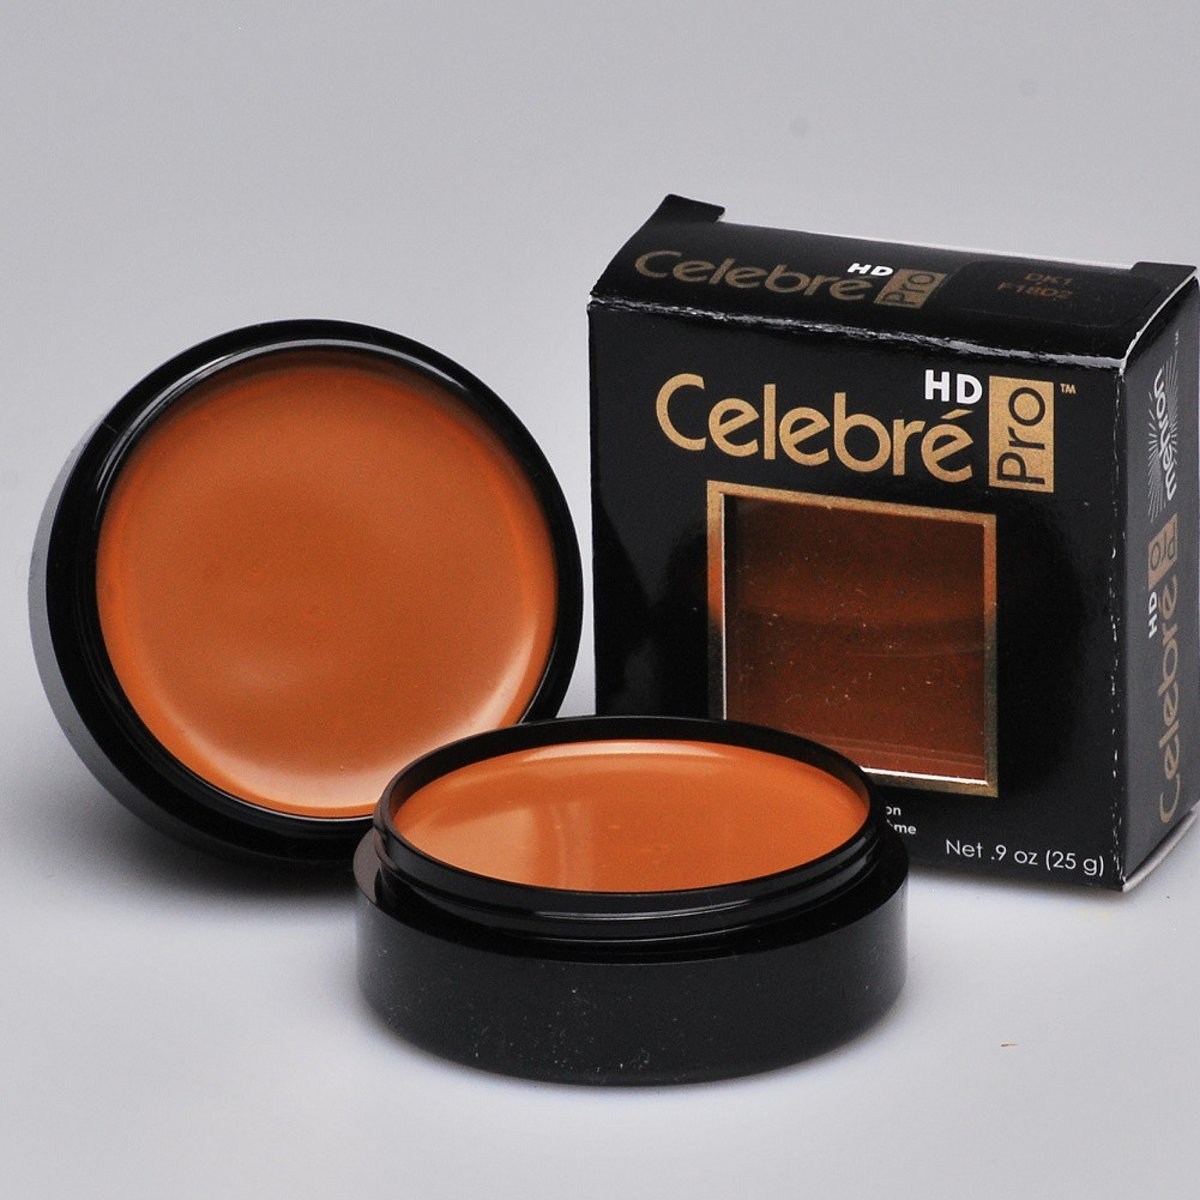 Celebre Pro-HD Cream -Dark 1